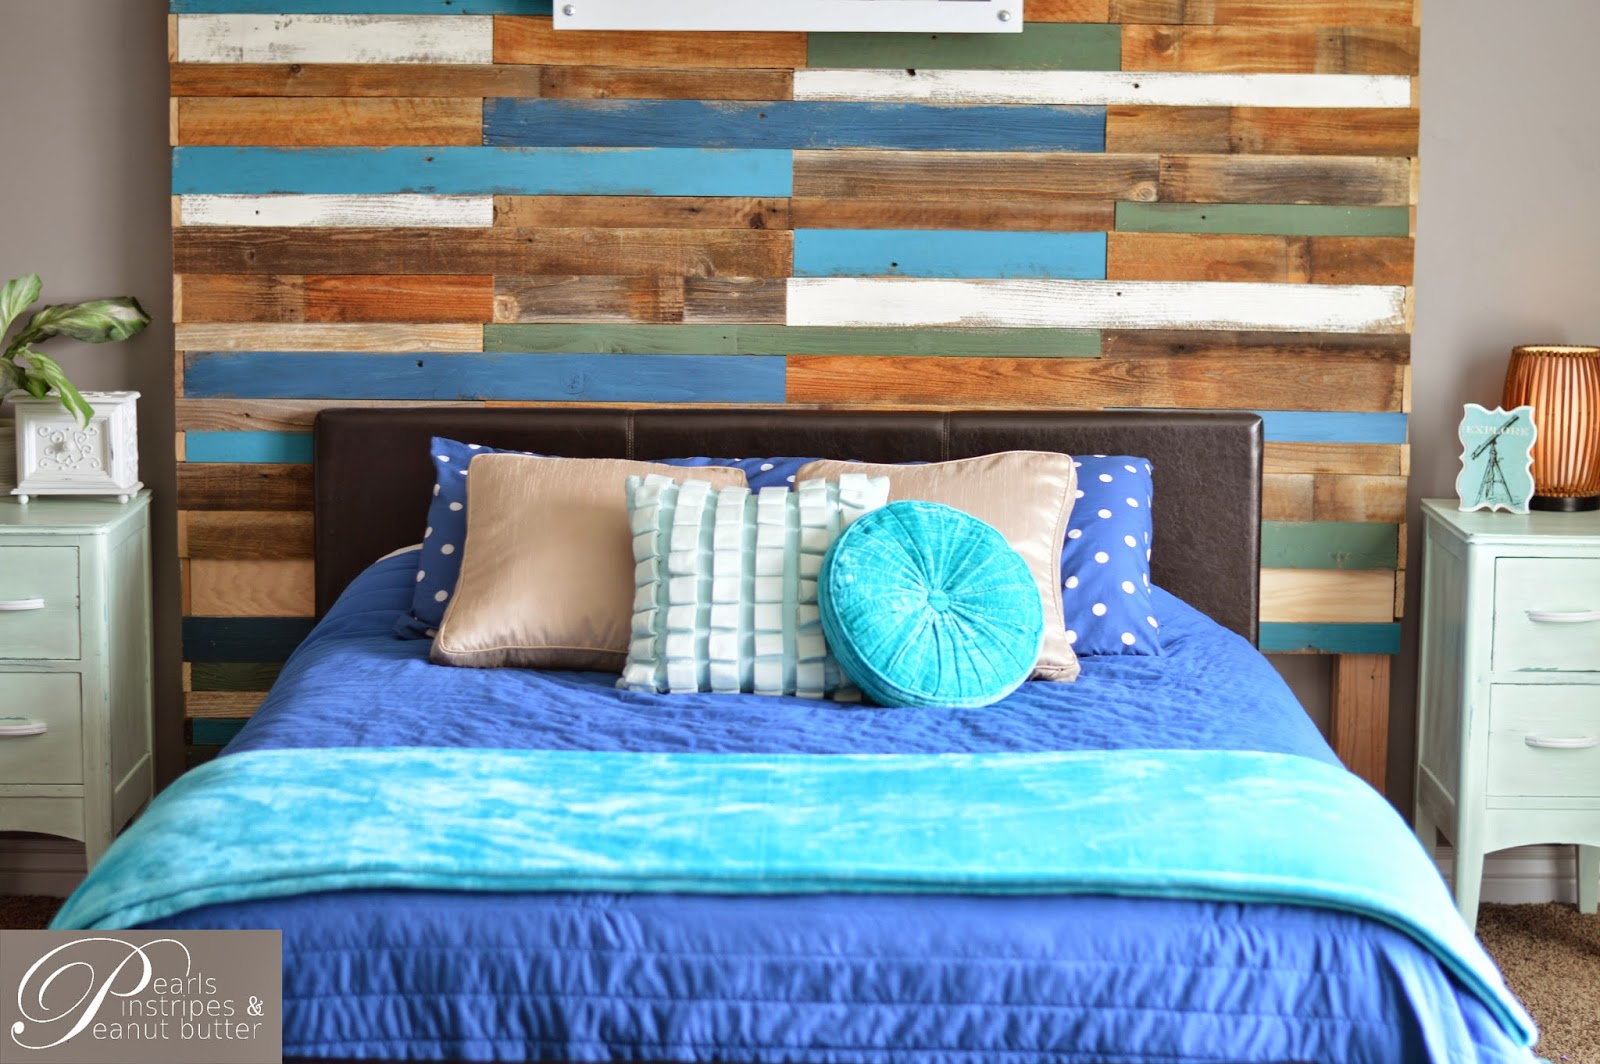 Remodelaholic | Colorful and Rustic Plank Headboard Wall